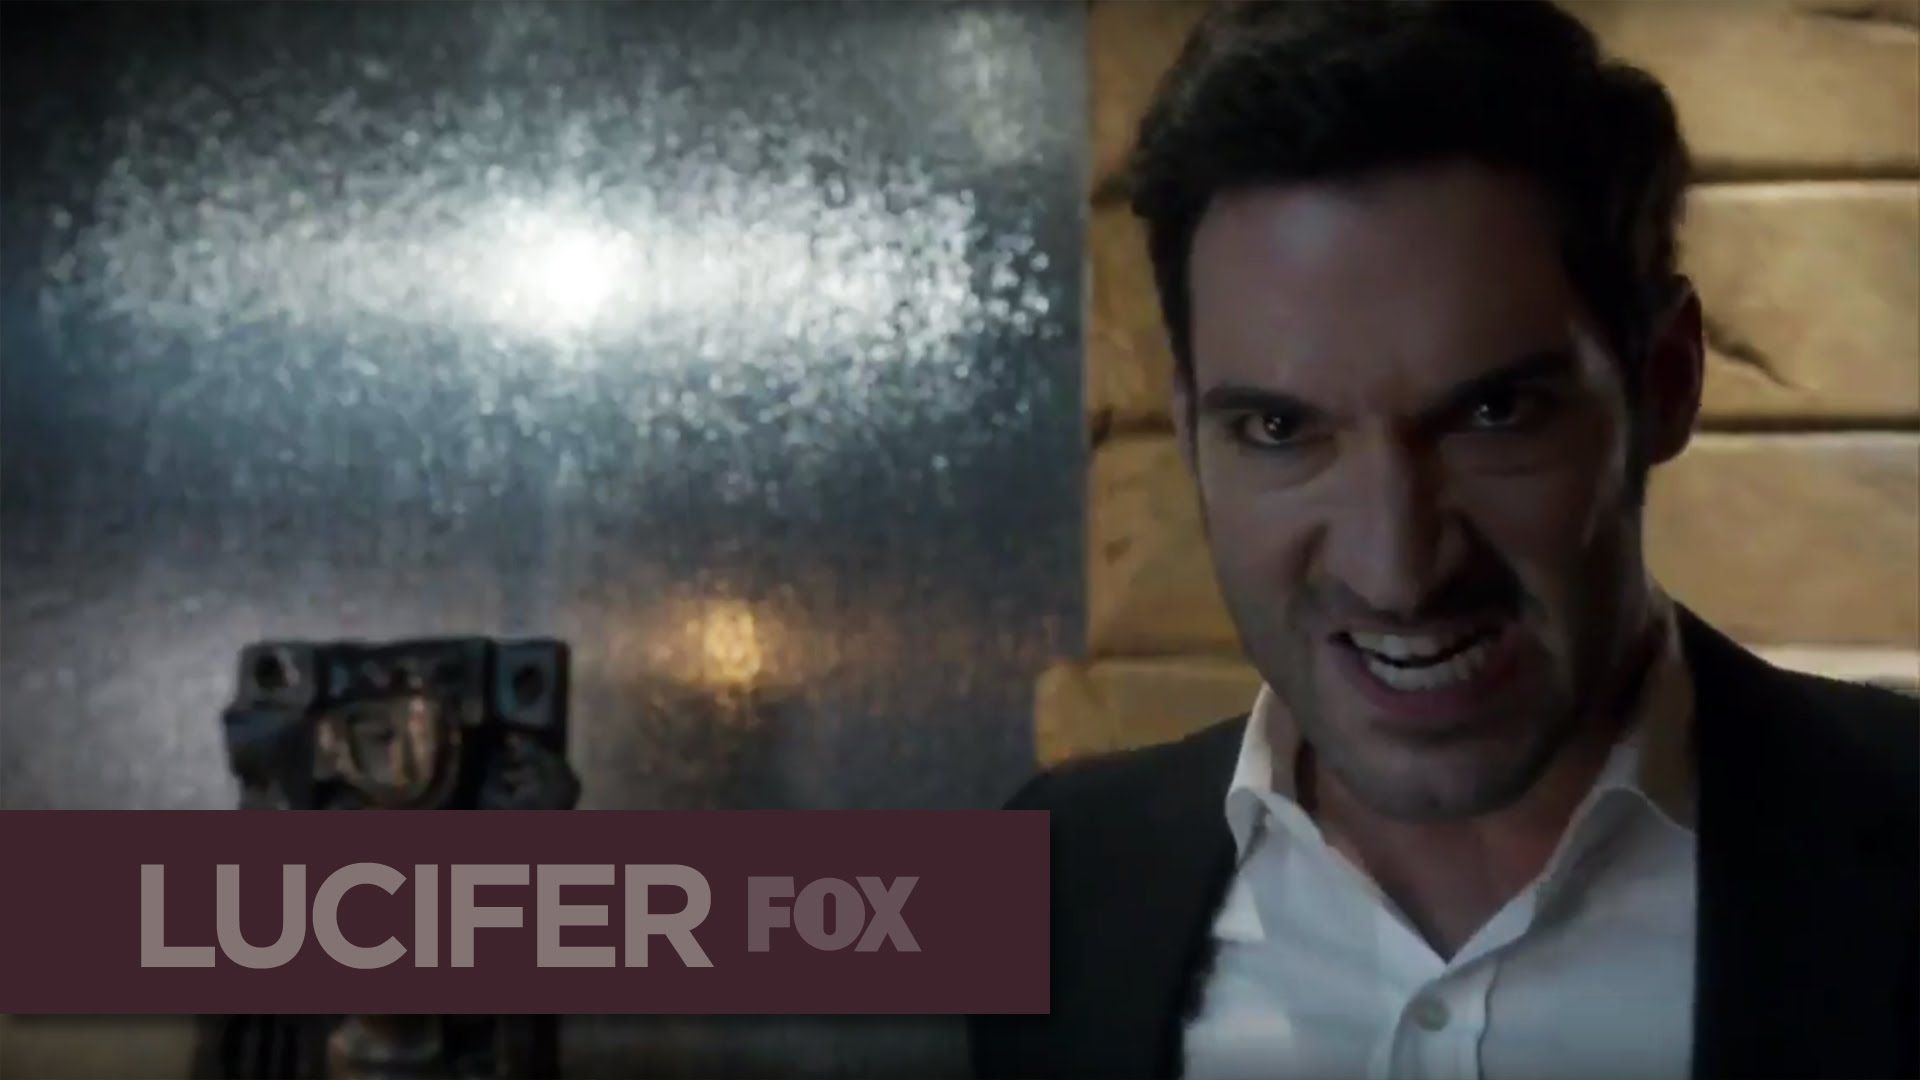 Lucifer Preview Teamlucifer Youtube Tom Ellis Image Search